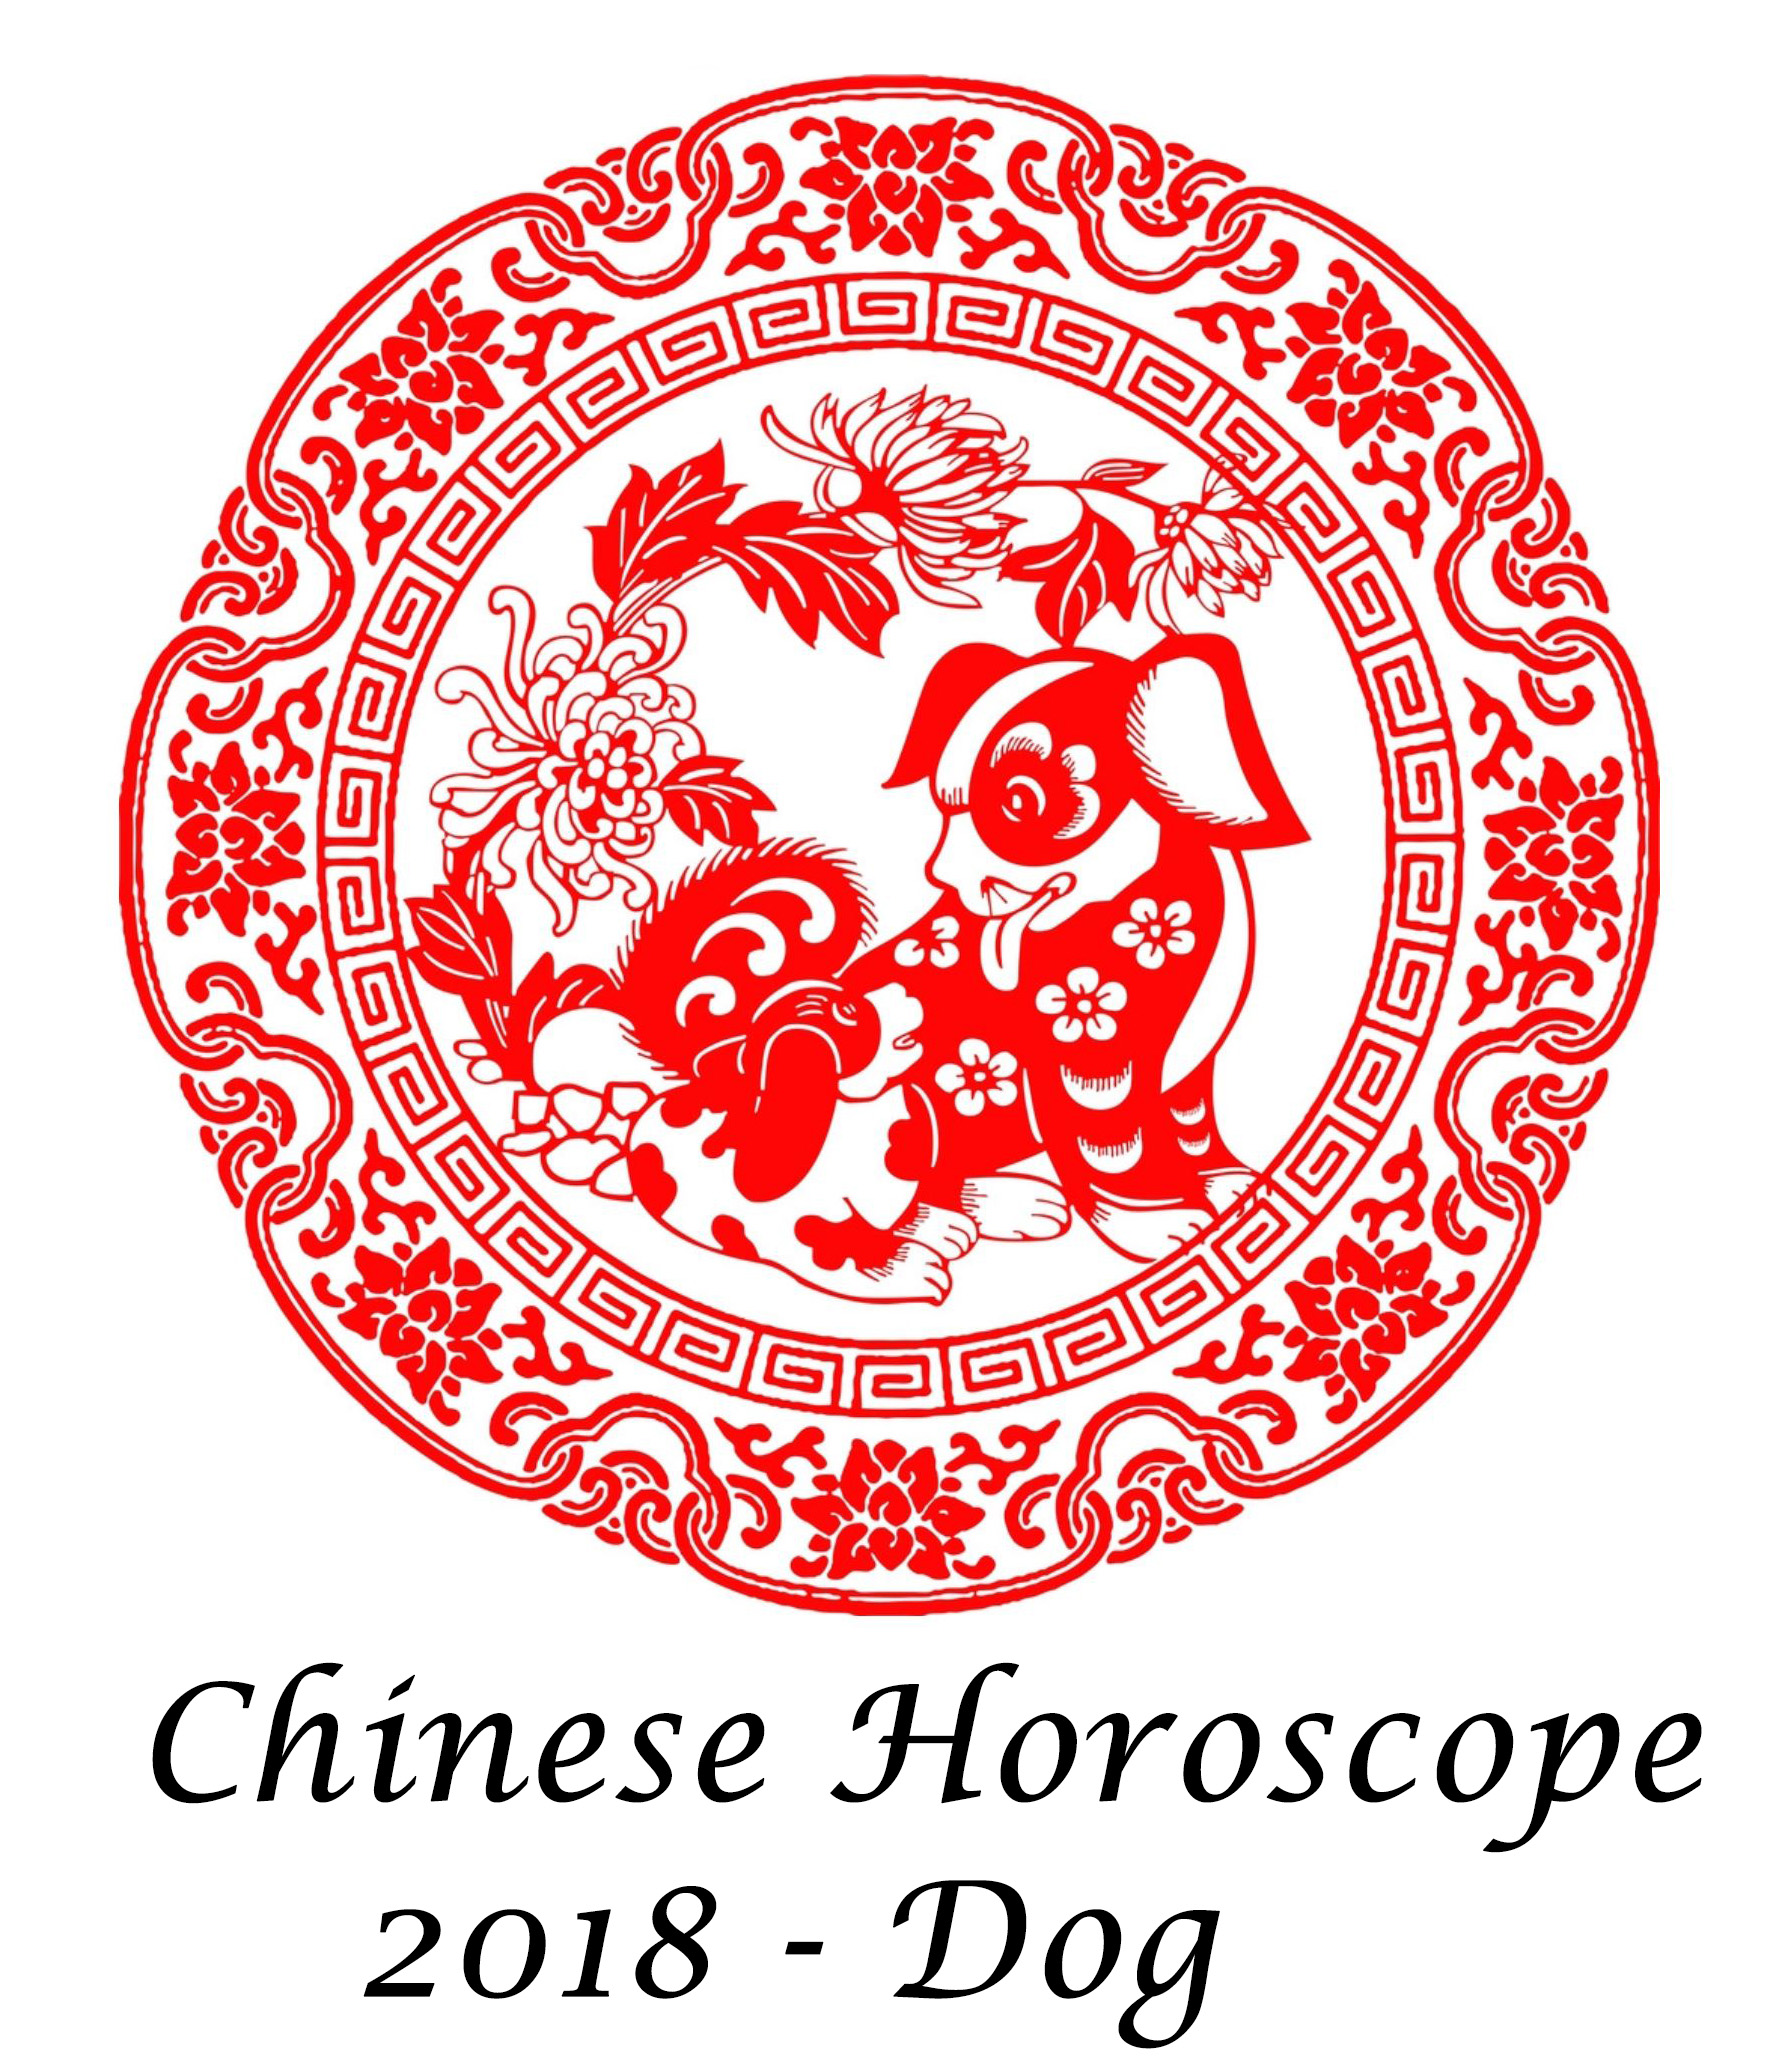 Chinese Horoscope Dog 2018